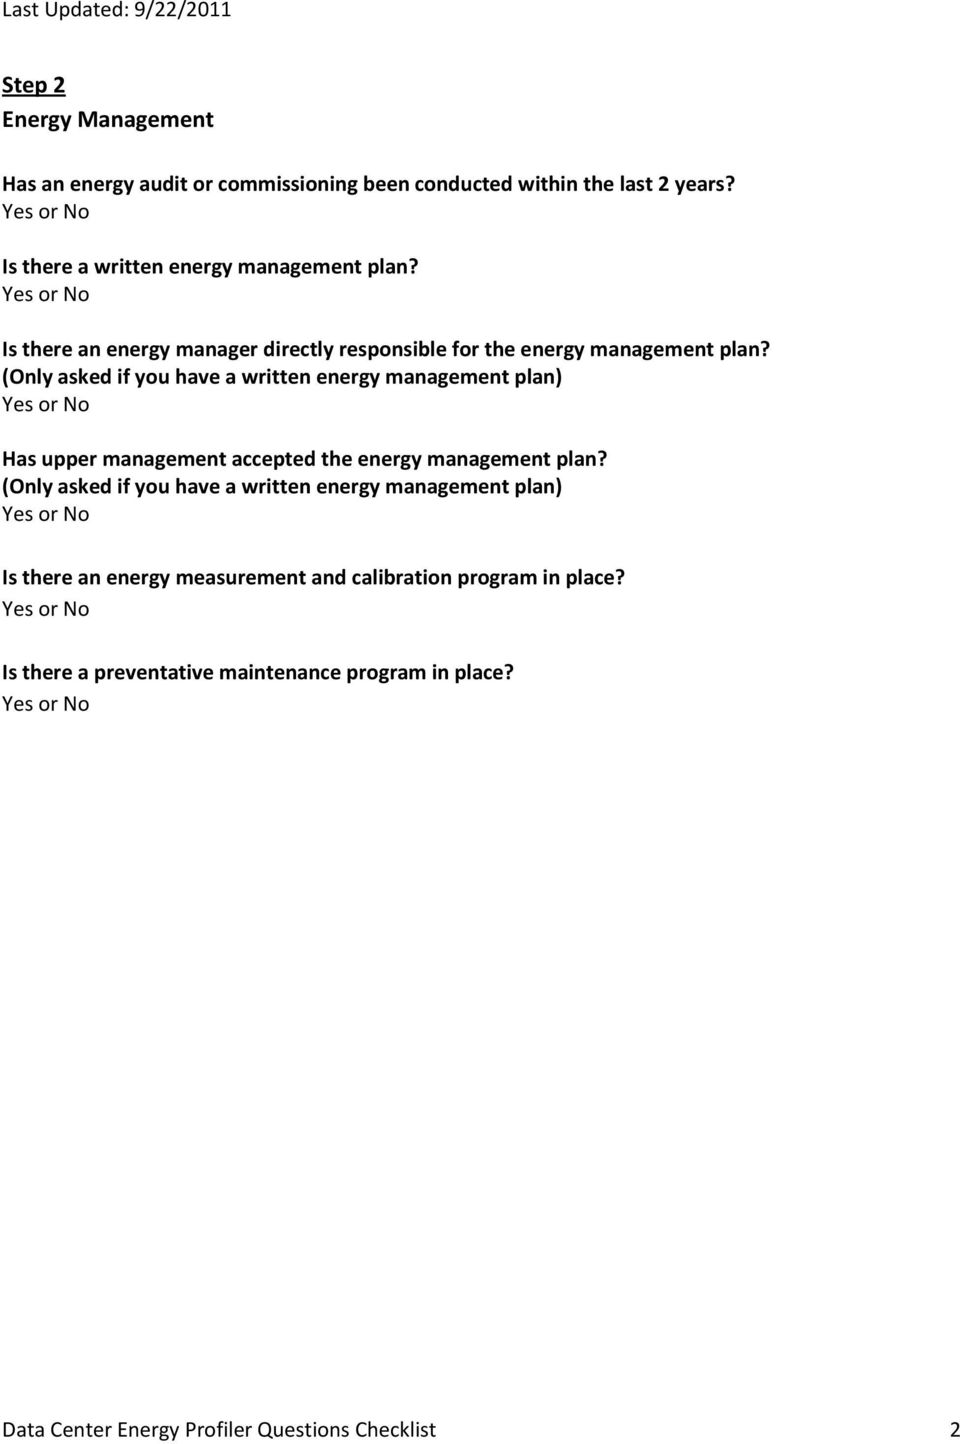 (Only asked if you have a written energy management plan) Has upper management accepted the energy management plan?